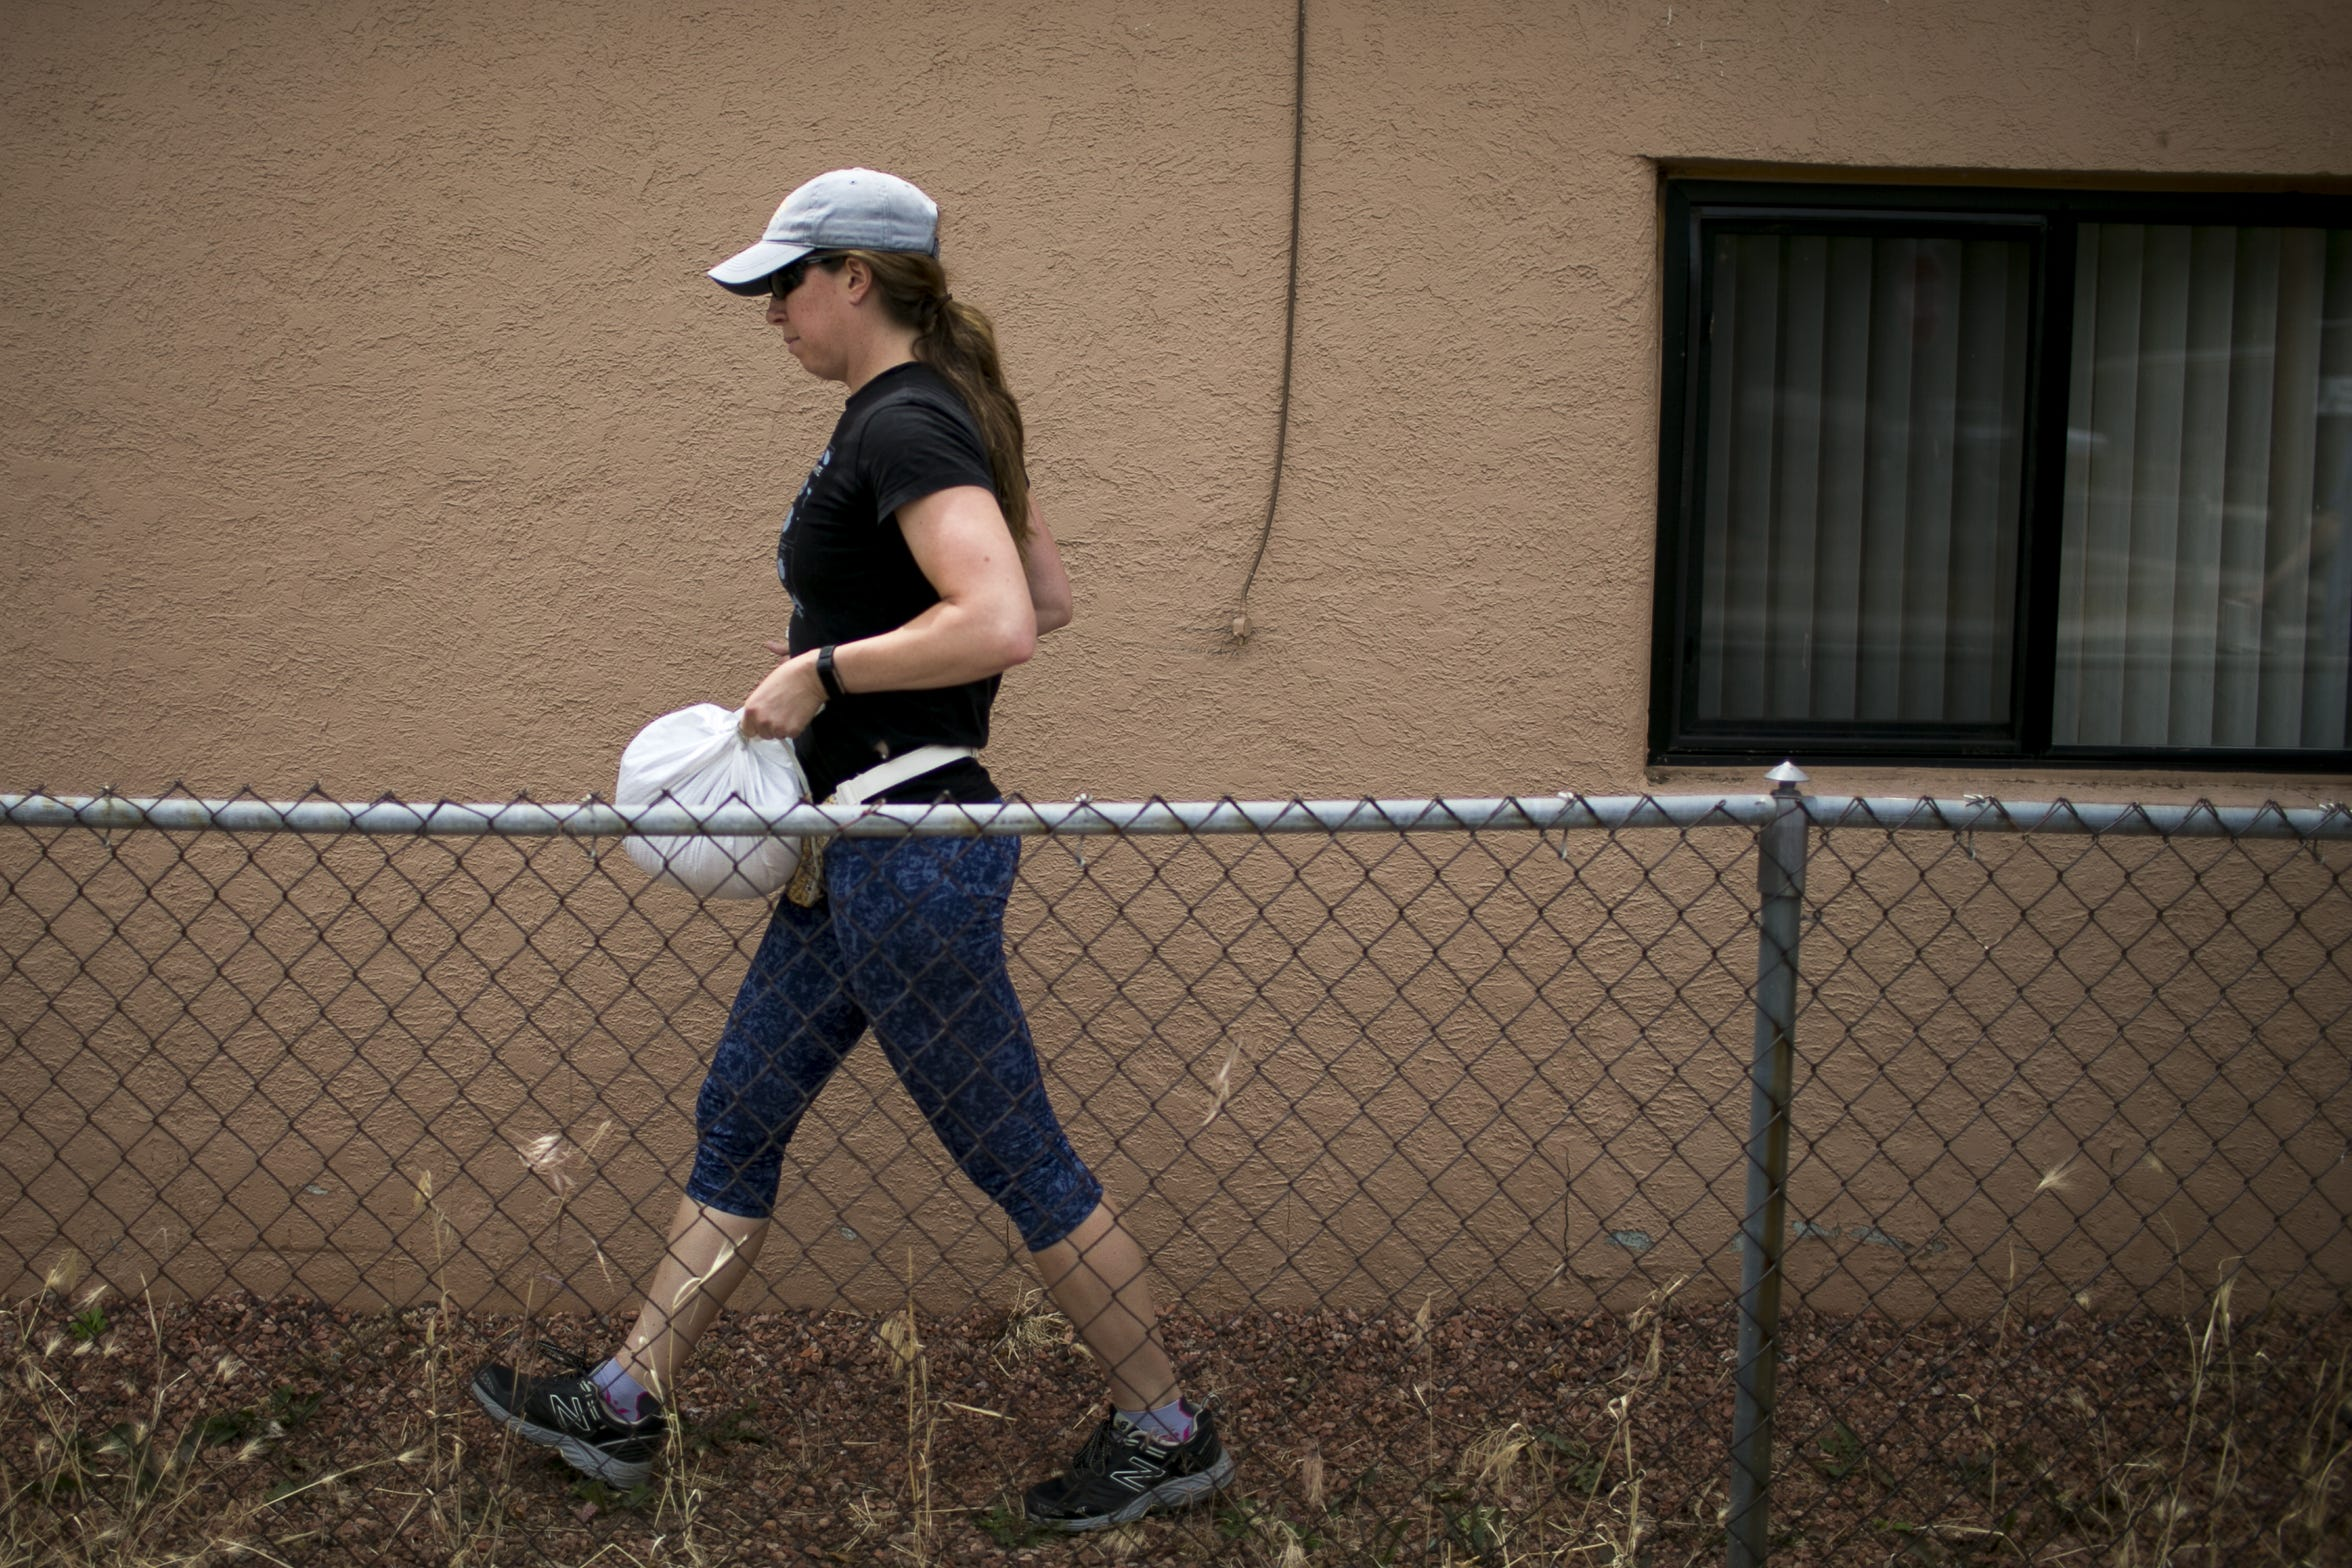 Elizabeth Vogler delivers sand bags to a home to help prepare for predicted flooding in Flagstaff on July 24, 2019. As the Museum Fire burned on in the mountains northwest of Flagstaff, residents in the Sunnyside community and nearby planned for flooding feared to be worsened in the monsoon season due to the fire.